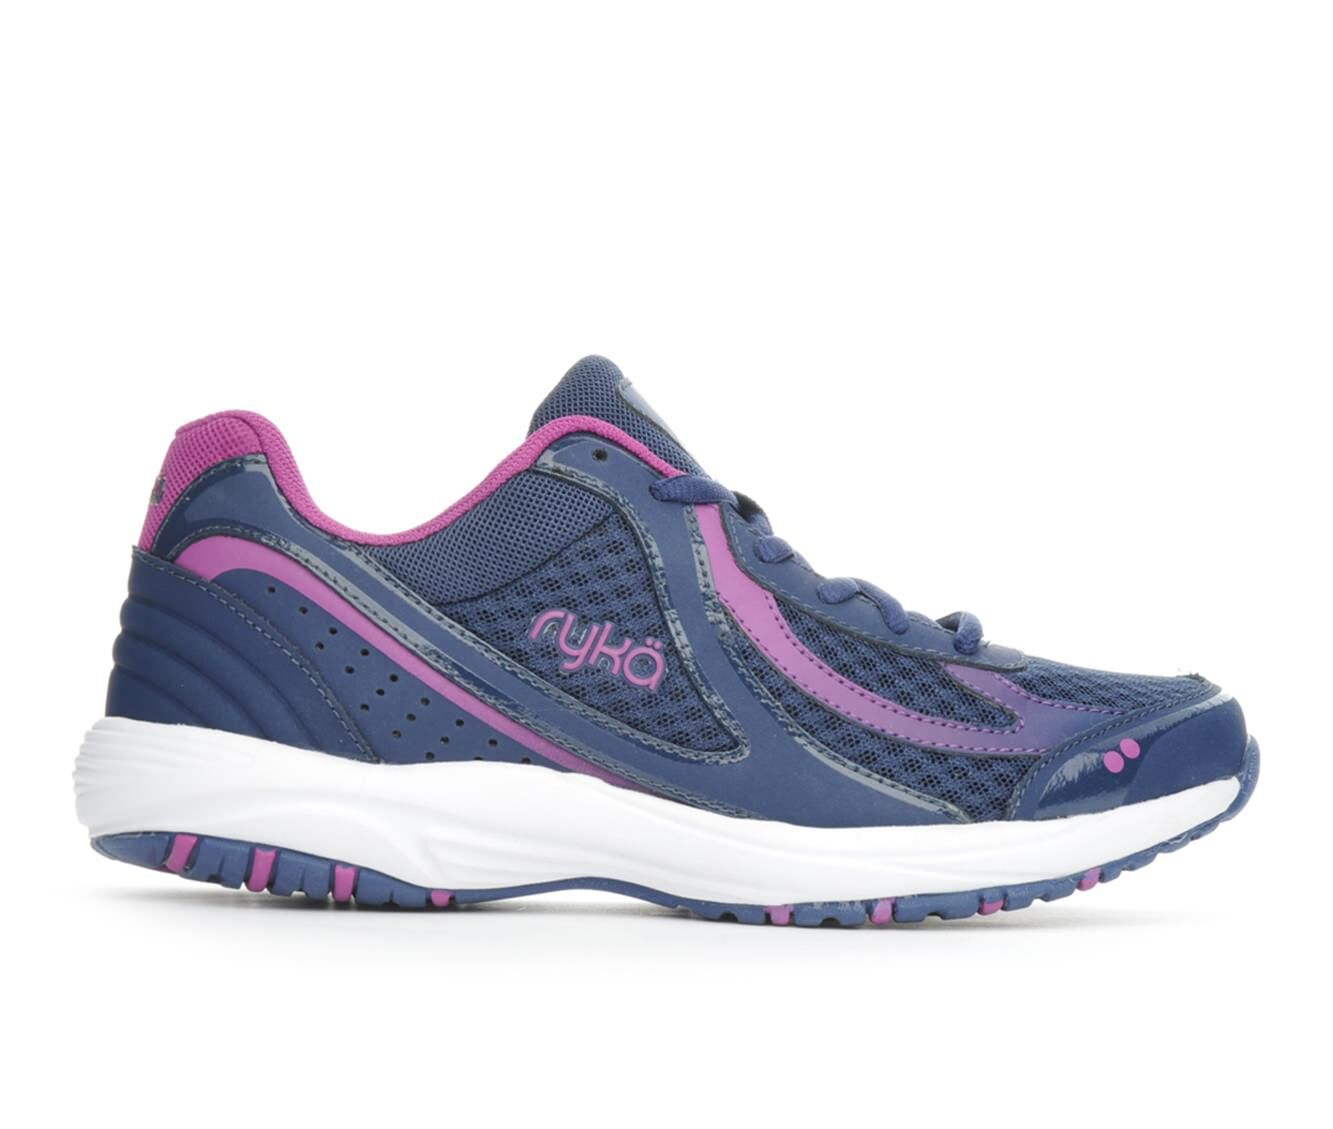 cheap online store Manchester discount wholesale price Ryka Dash 3 Women's Walking ... Shoes pictures online KOeoKICJ